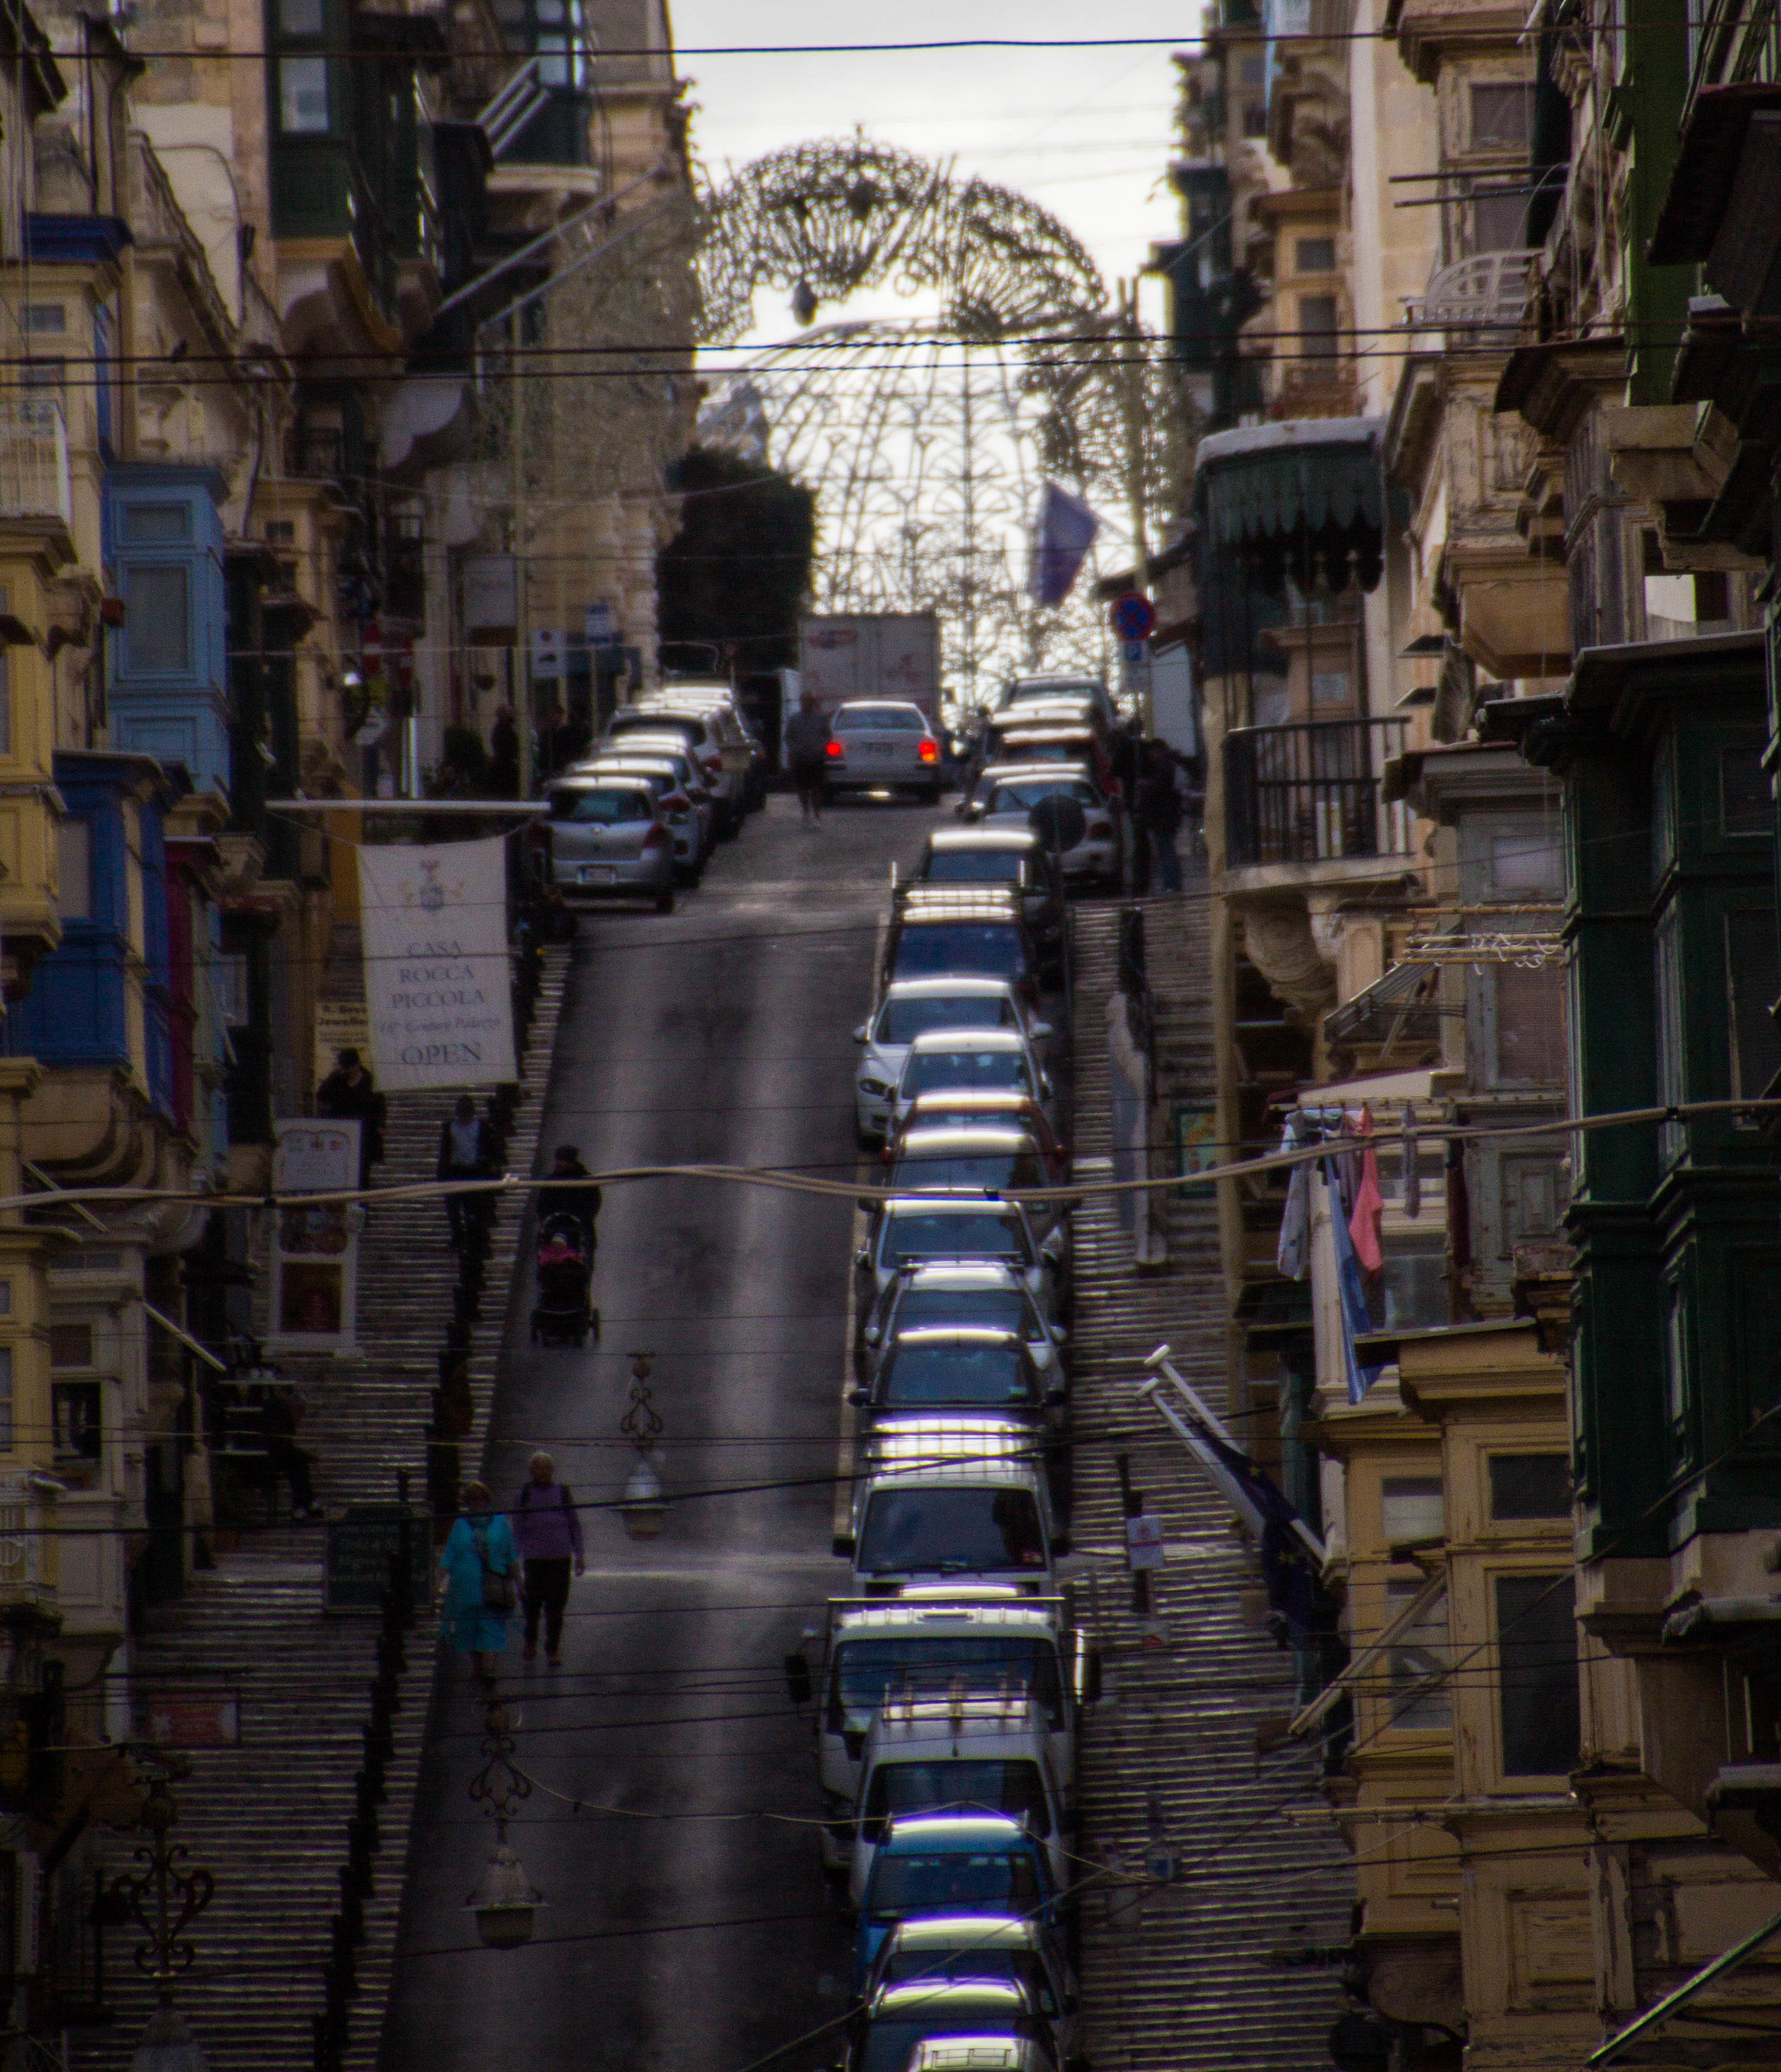 valletta-malta-clouds-rain-streets-photography-37.jpg